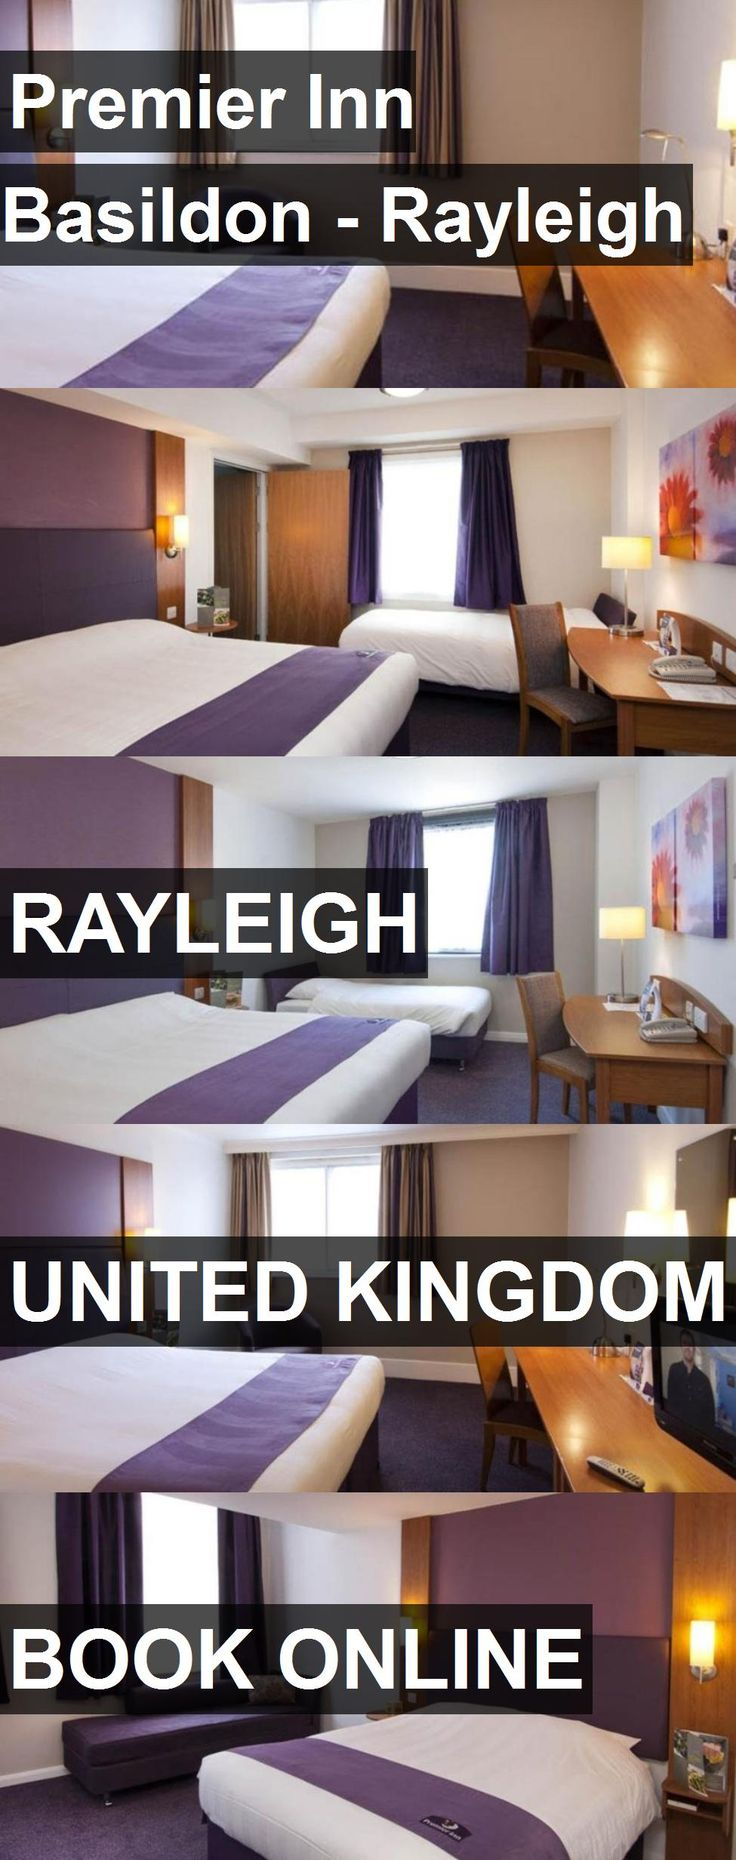 Hotel Premier Inn Basildon - Rayleigh in Rayleigh, United Kingdom. For more information, photos, reviews and best prices please follow the link. #UnitedKingdom #Rayleigh #travel #vacation #hotel